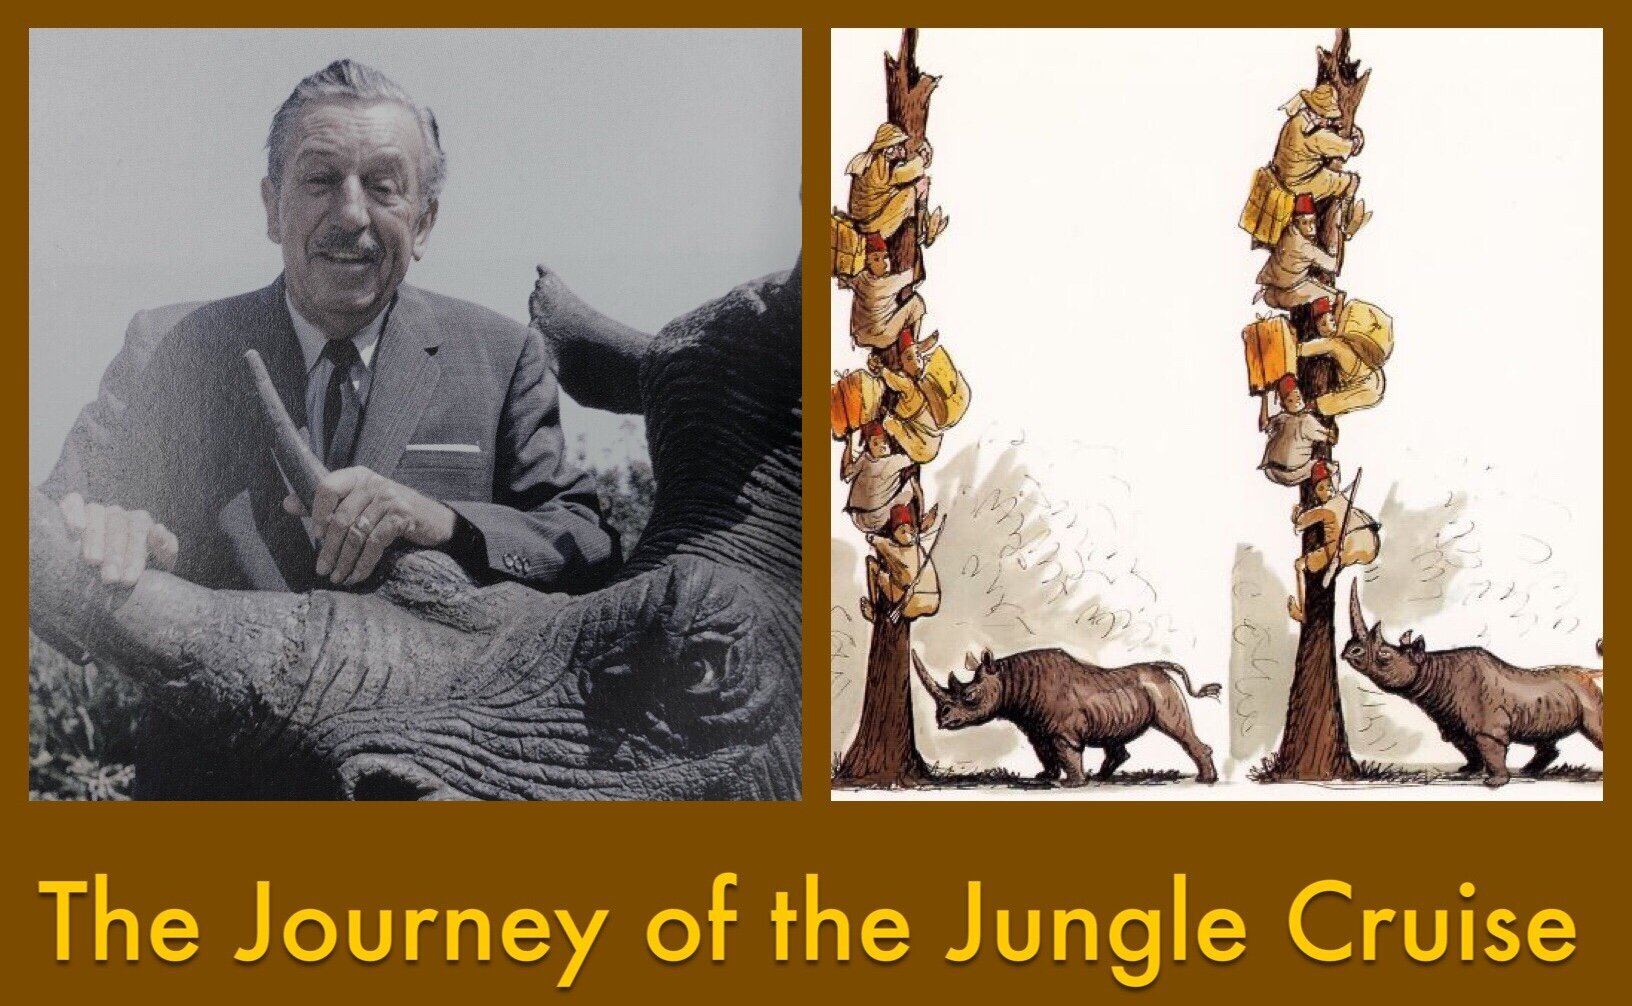 Dixon on Disney - A reminder from the history of the Jungle Cruise attraction that life is a journey and things may look different depending on whether you're at the beginning, in the middle or at the end of the ride.